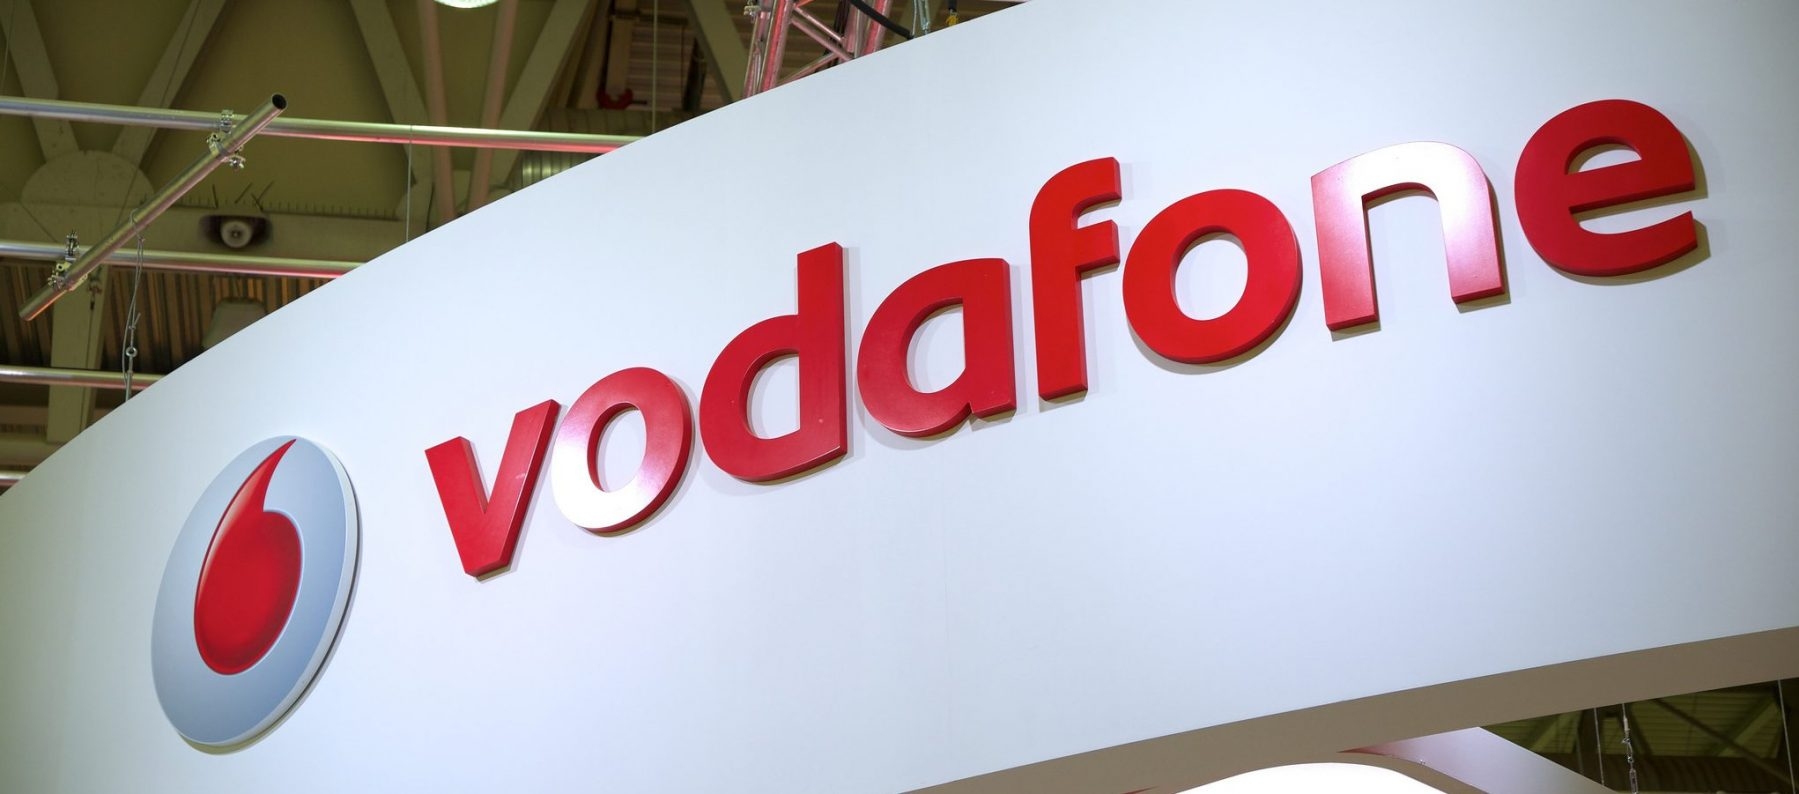 A Vodafone sign at an exhibition